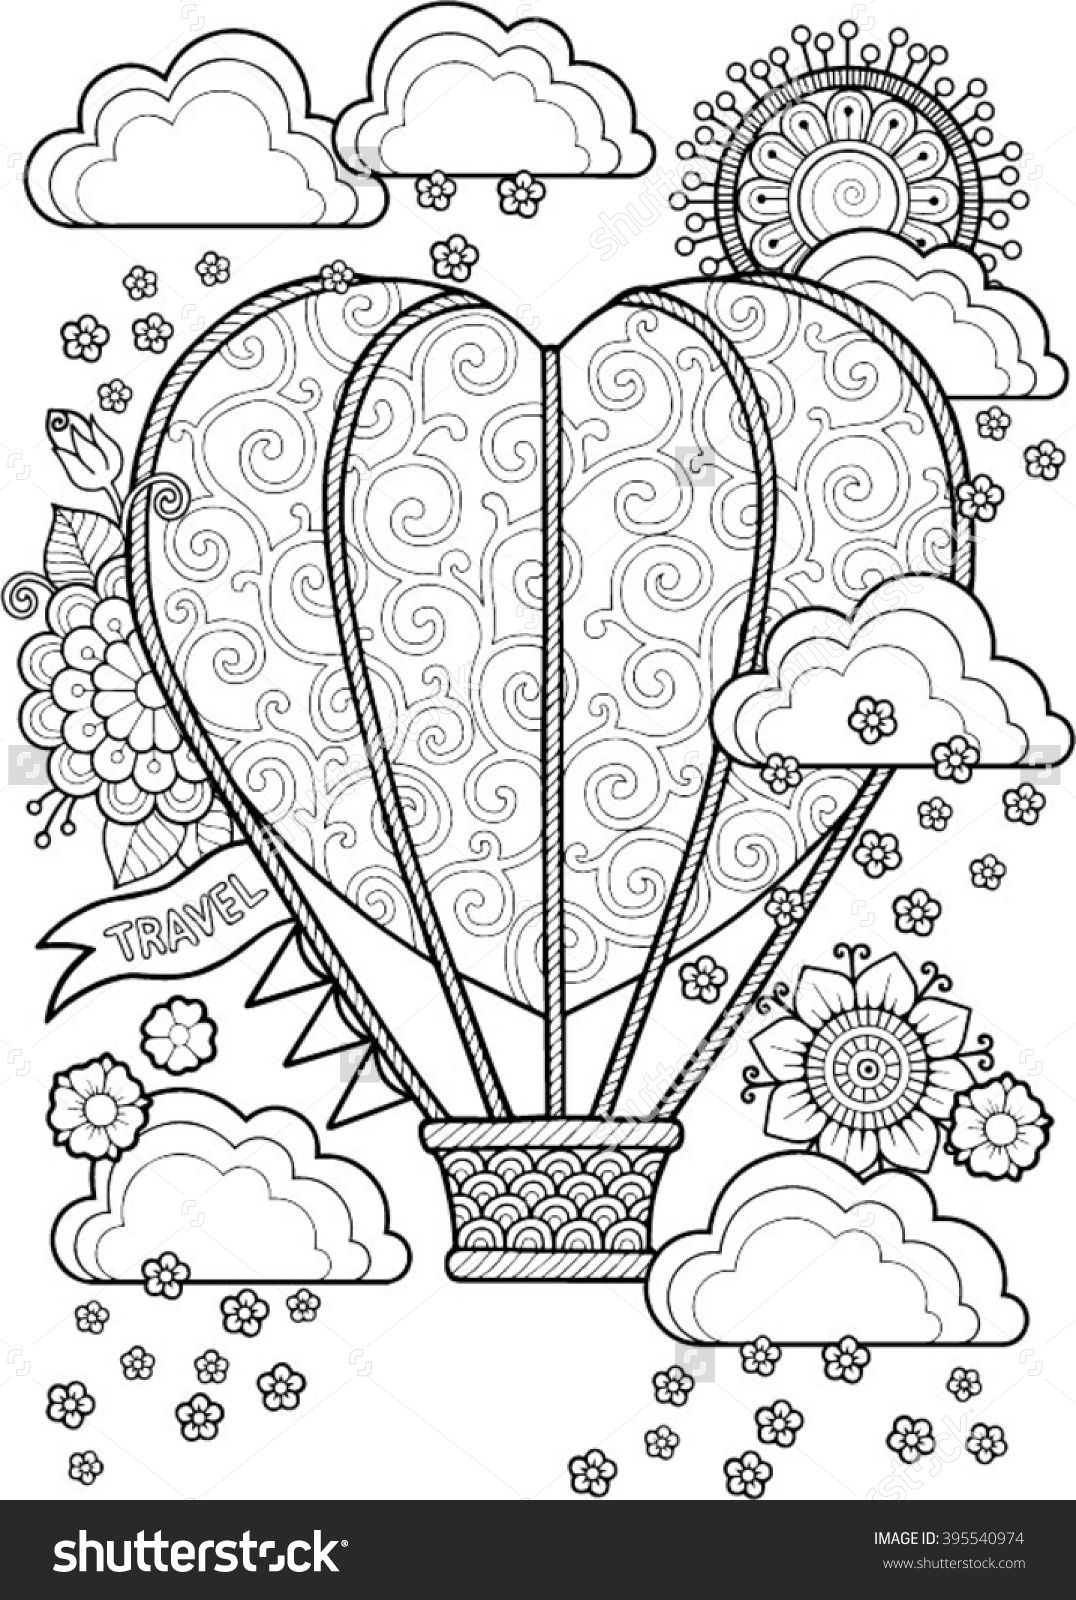 Coloring pages for adults valentines day - Journey In A Balloon Valentines Day Coloring Book For Adult I Love You